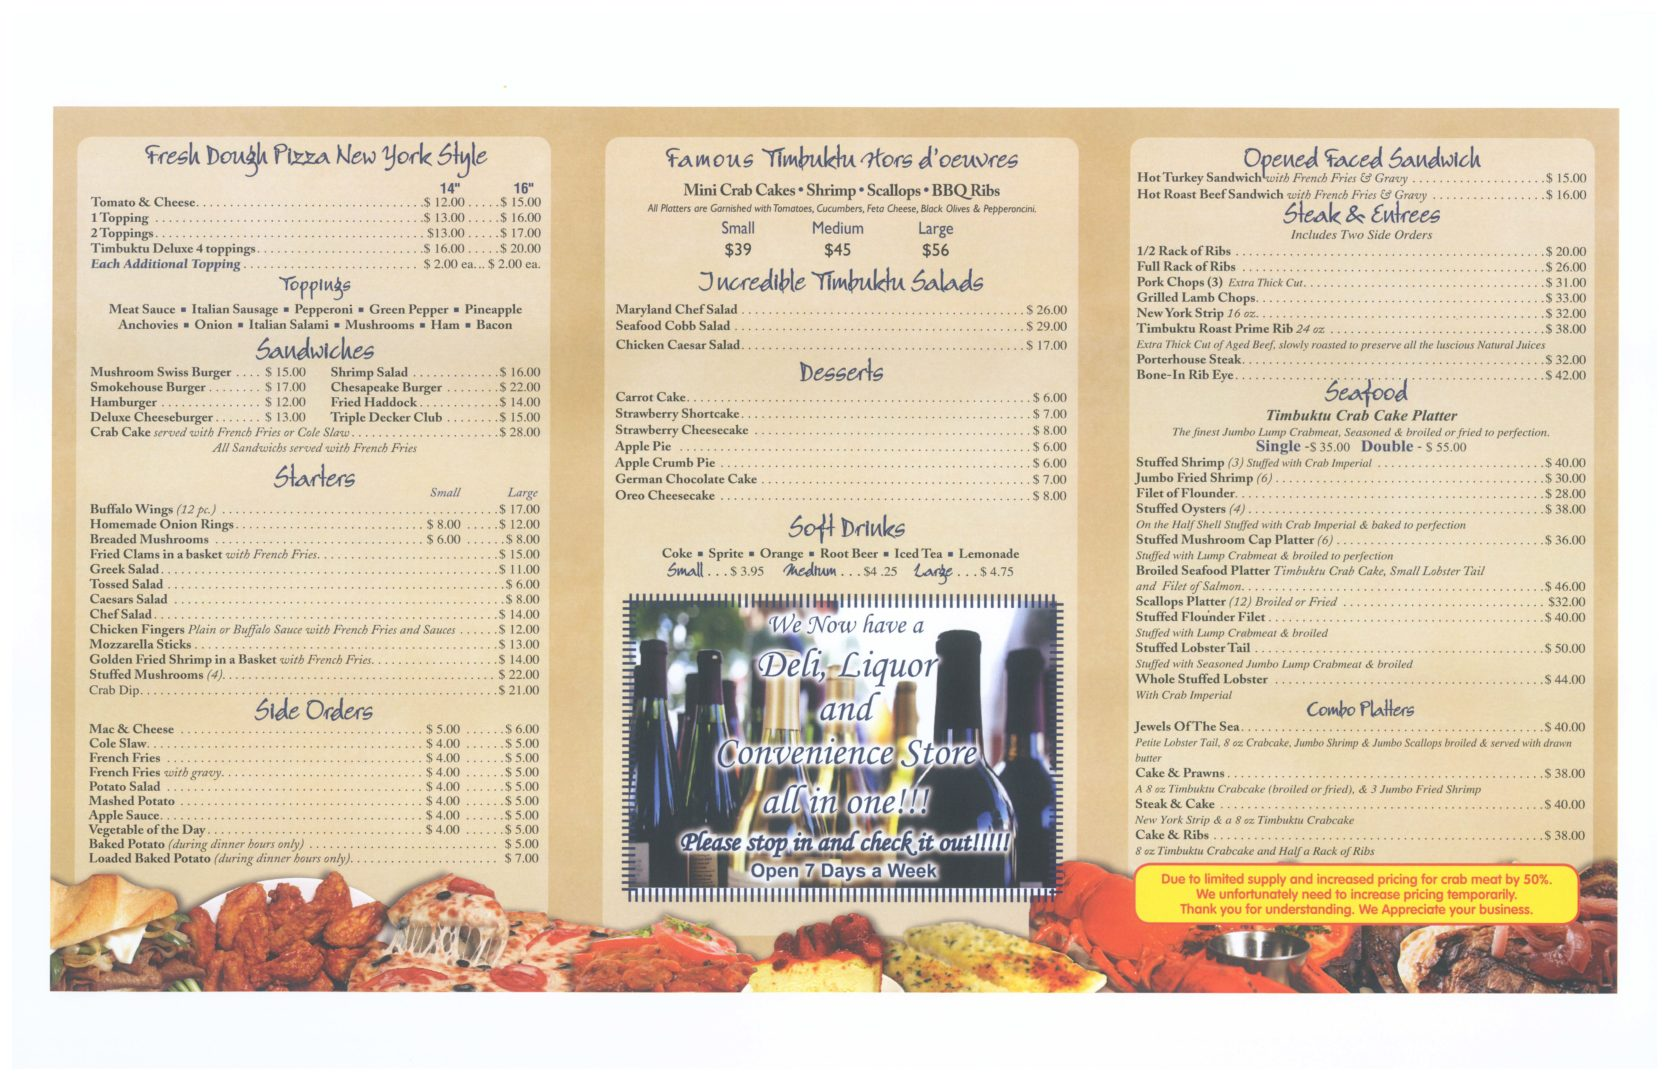 Carry Out Menu page 2